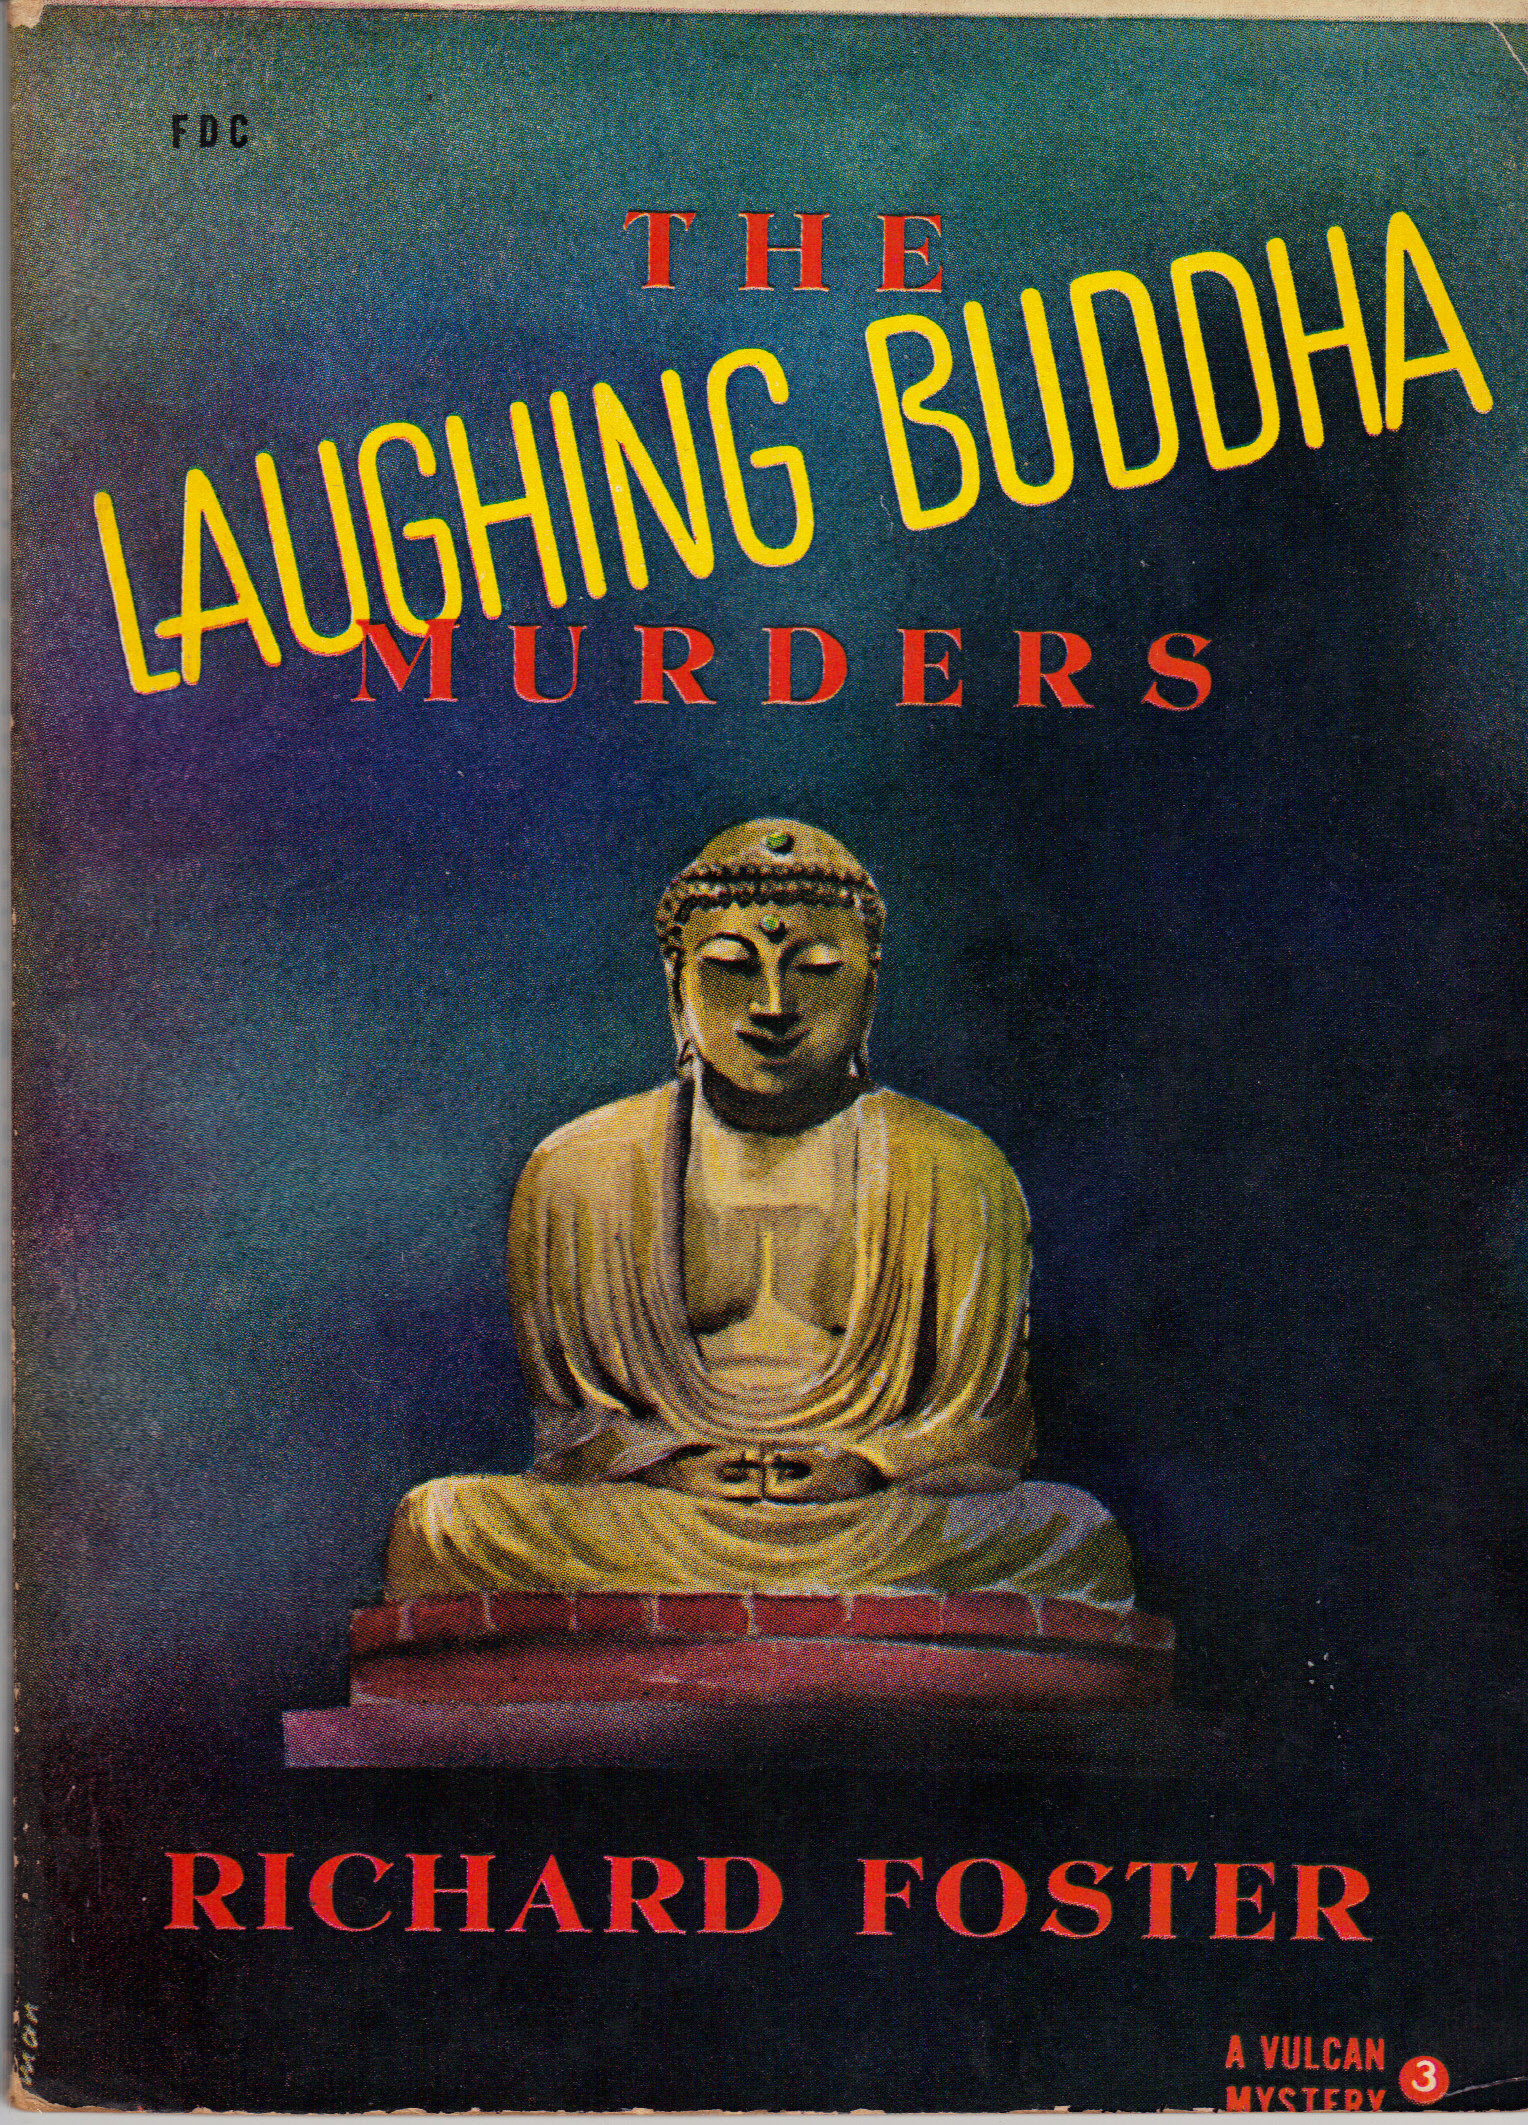 Image for THE LAUGHING BUDDHA MURDERS